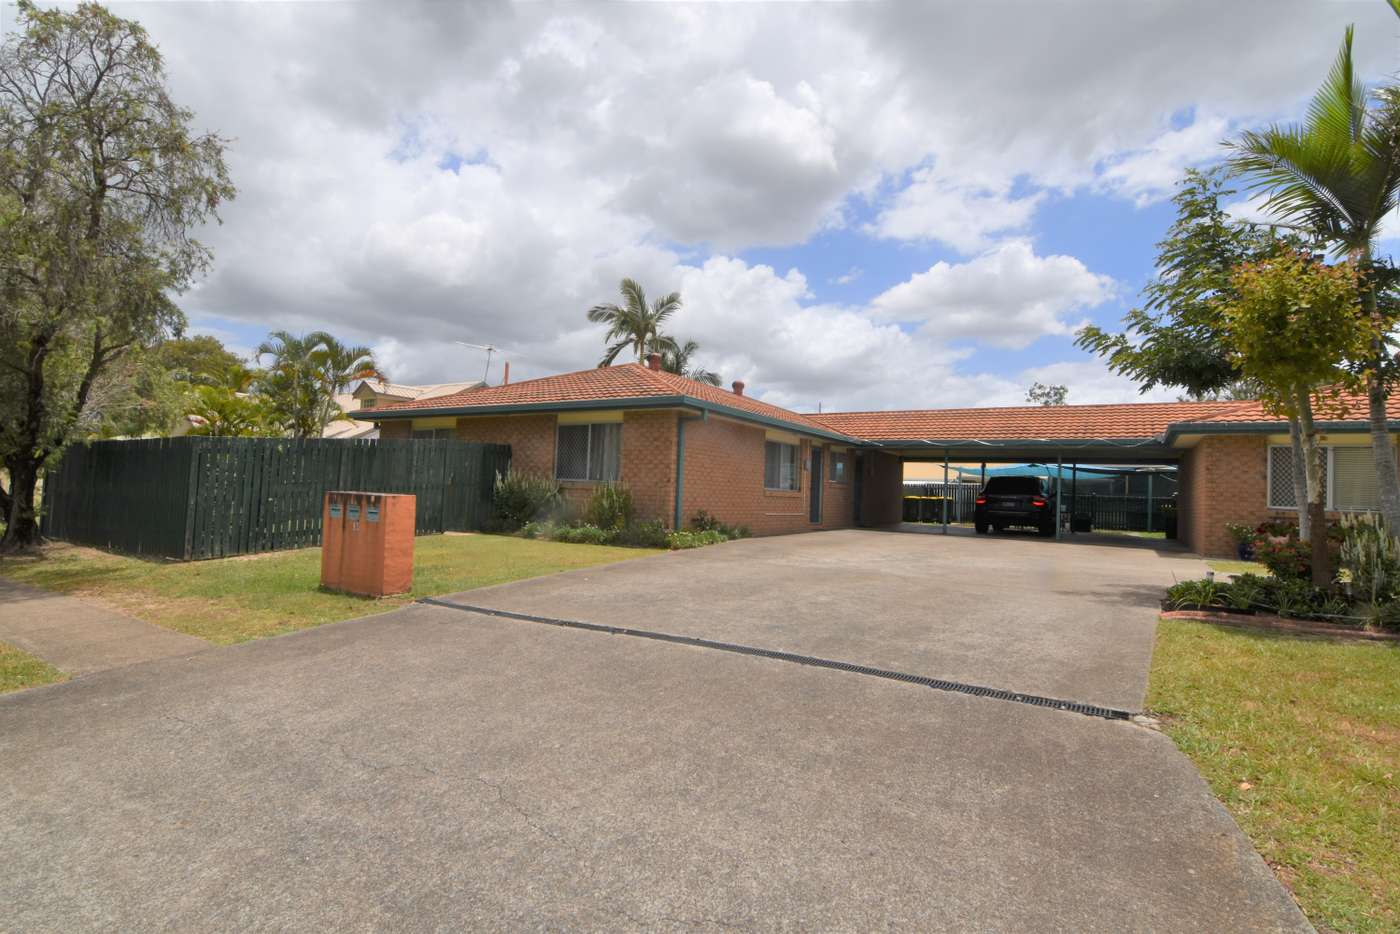 Main view of Homely house listing, 1/15 LANCEWOOD STREET, Algester QLD 4115